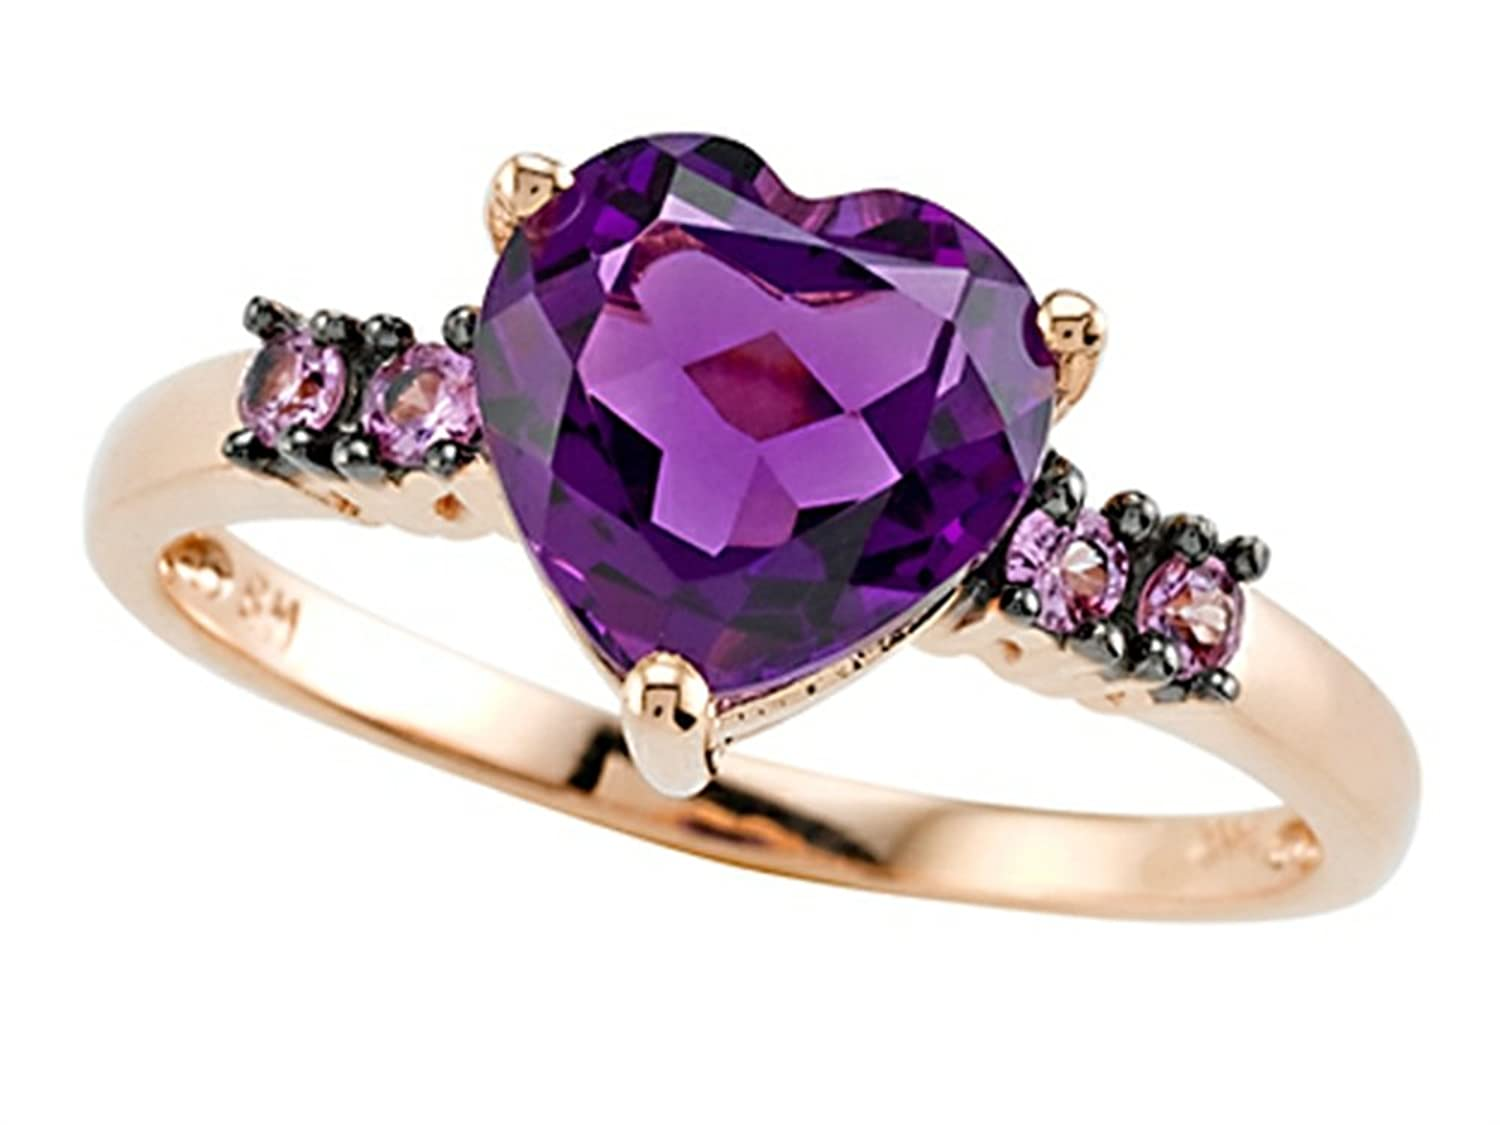 Fine Jewelry Genuine Amethyst and Pink Sapphire Ring N69jYB